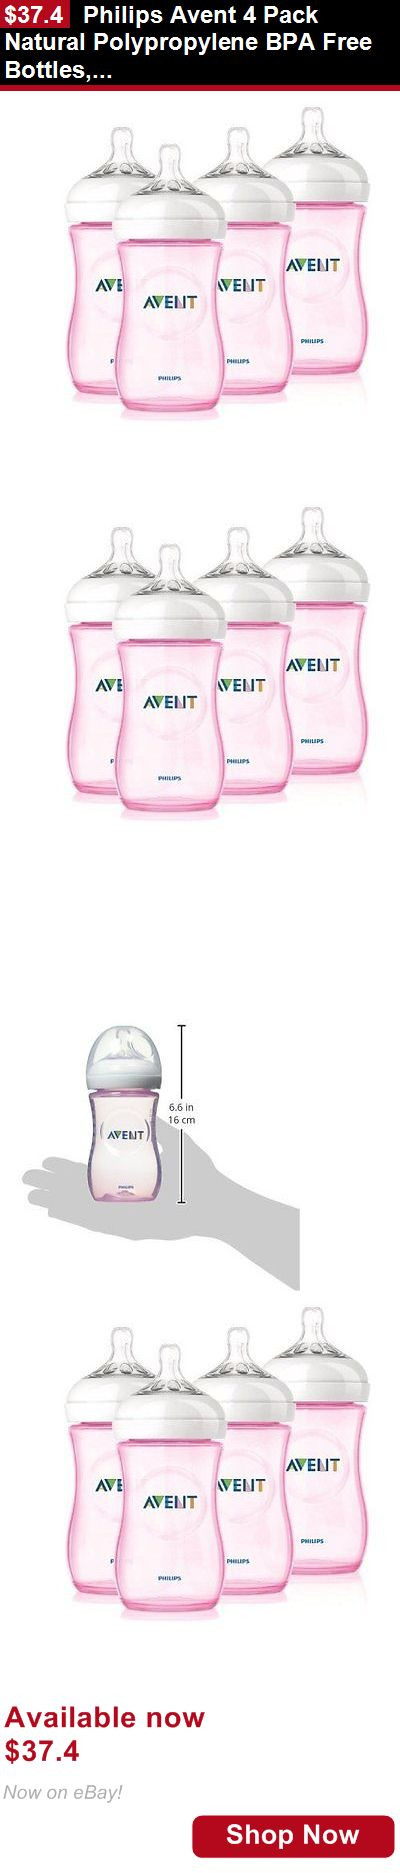 Baby Bottles: Philips Avent 4 Pack Natural Polypropylene Bpa Free Bottles, Pink, 9 Ounce BUY IT NOW ONLY: $37.4